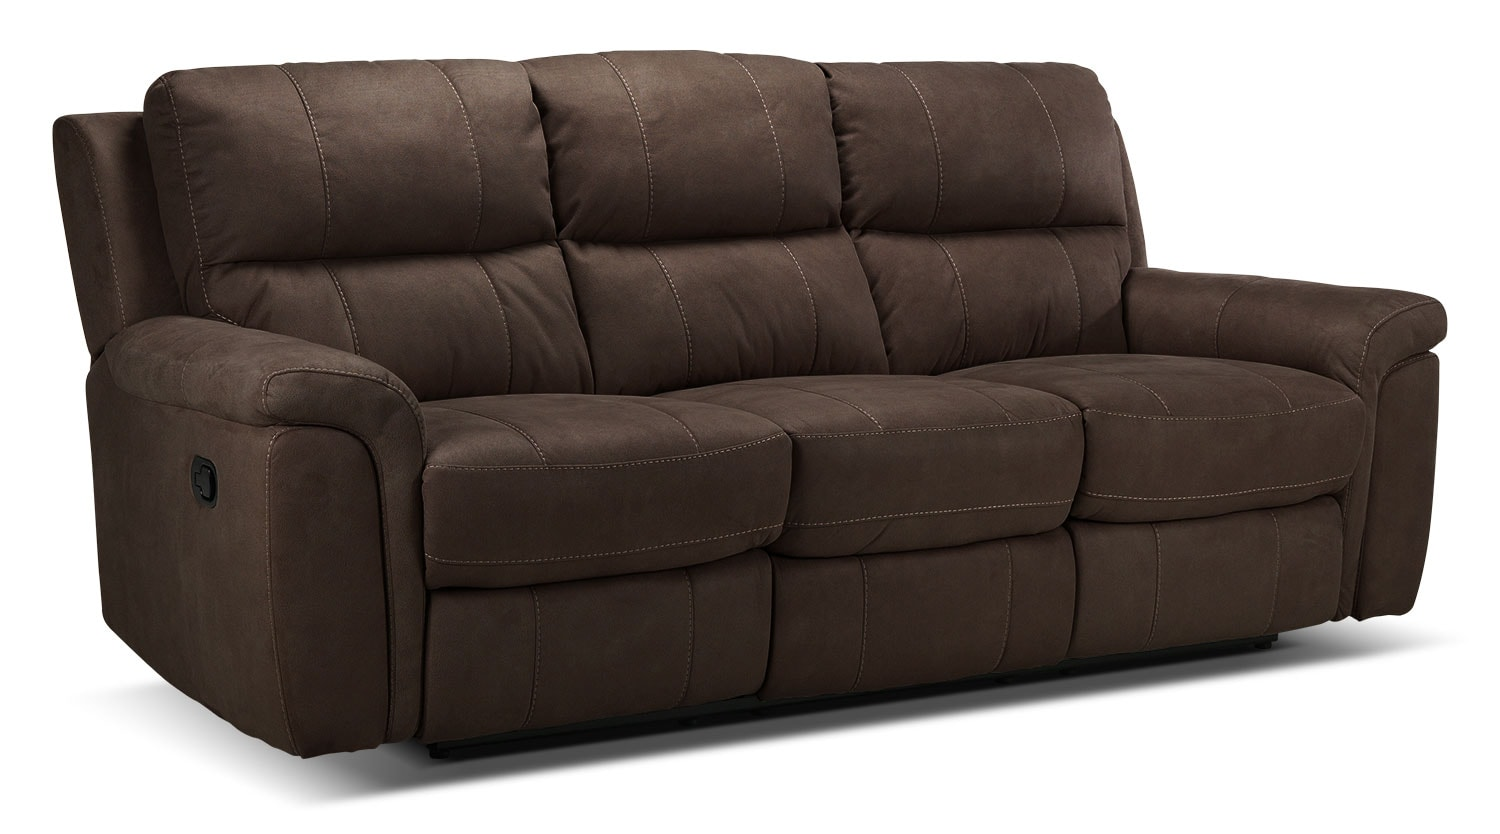 Roarke Reclining Sofa - Walnut